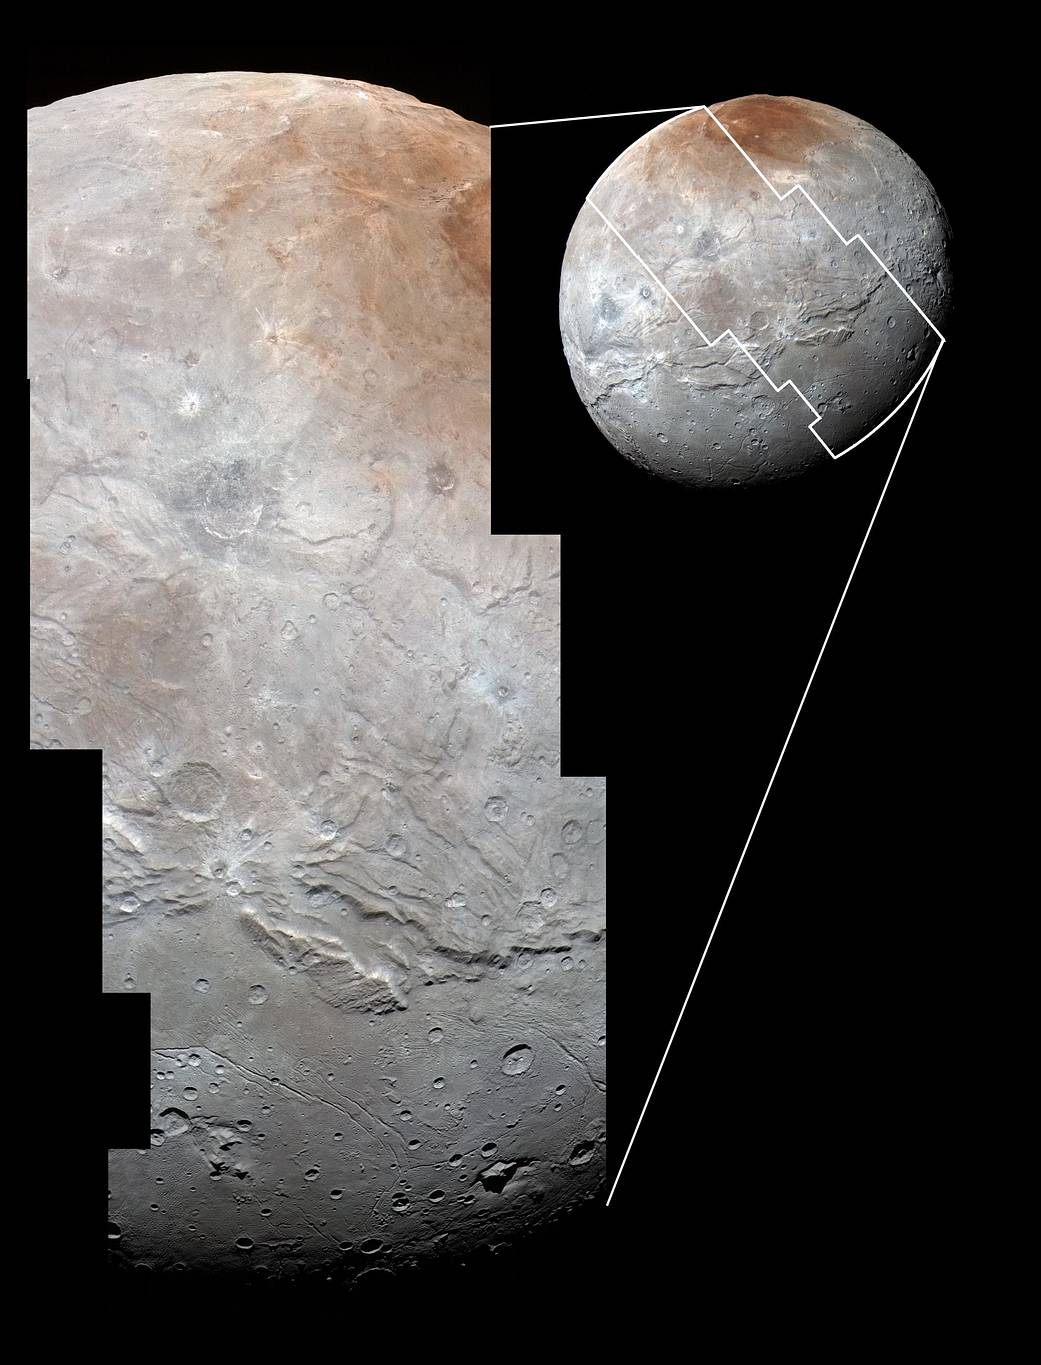 New Horizons : objectif Pluton - Page 5 Nh-charon-detail-9-29-15